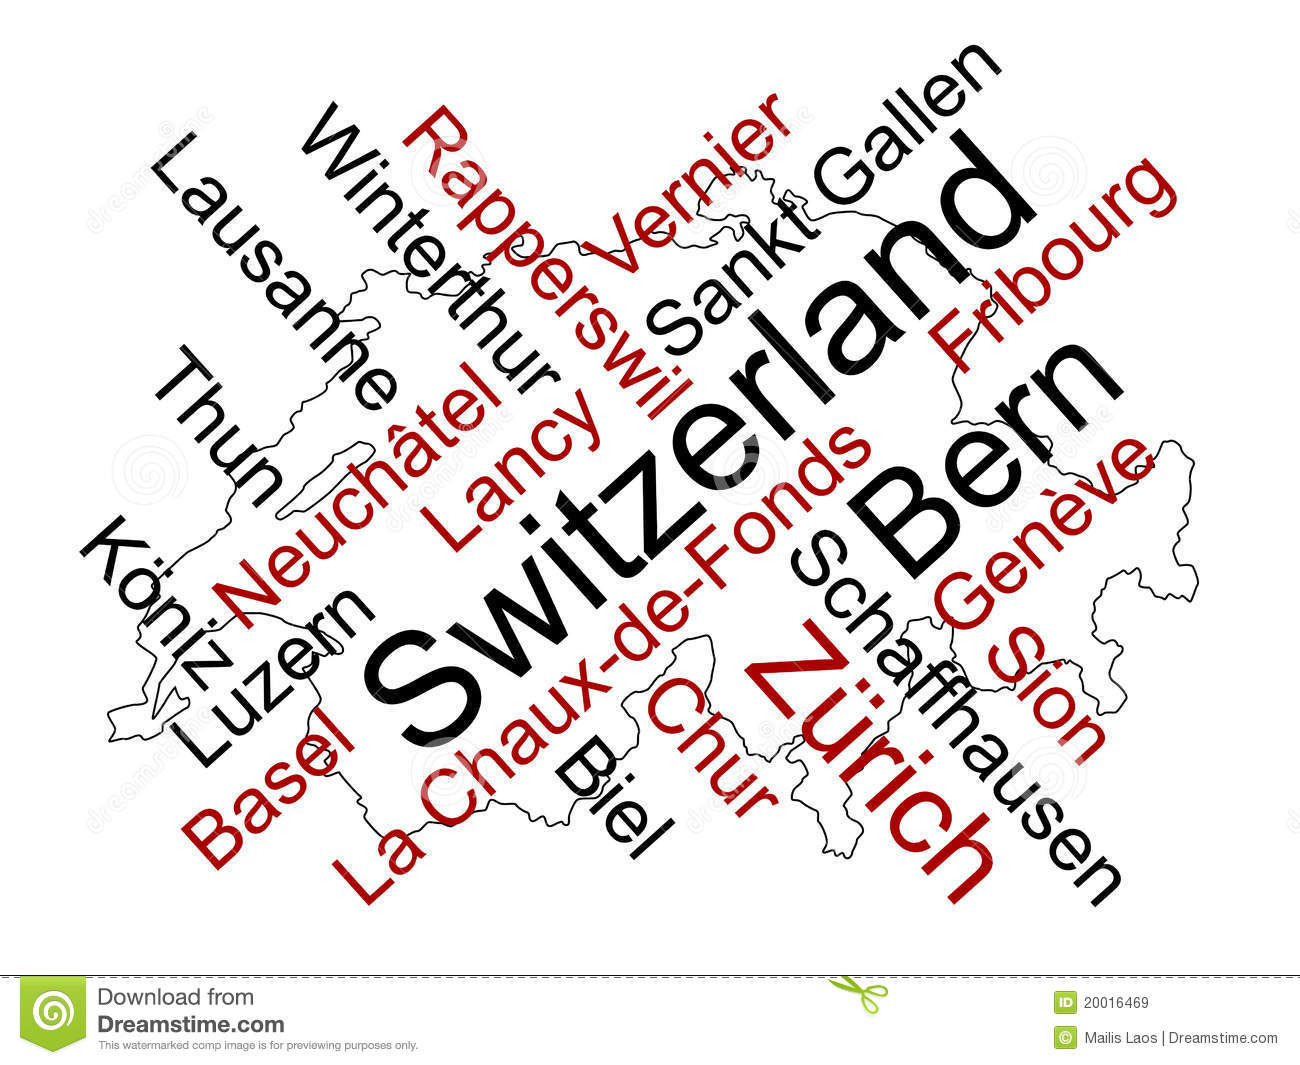 Switzerland map and cities stock vector. Illustration of europe ...